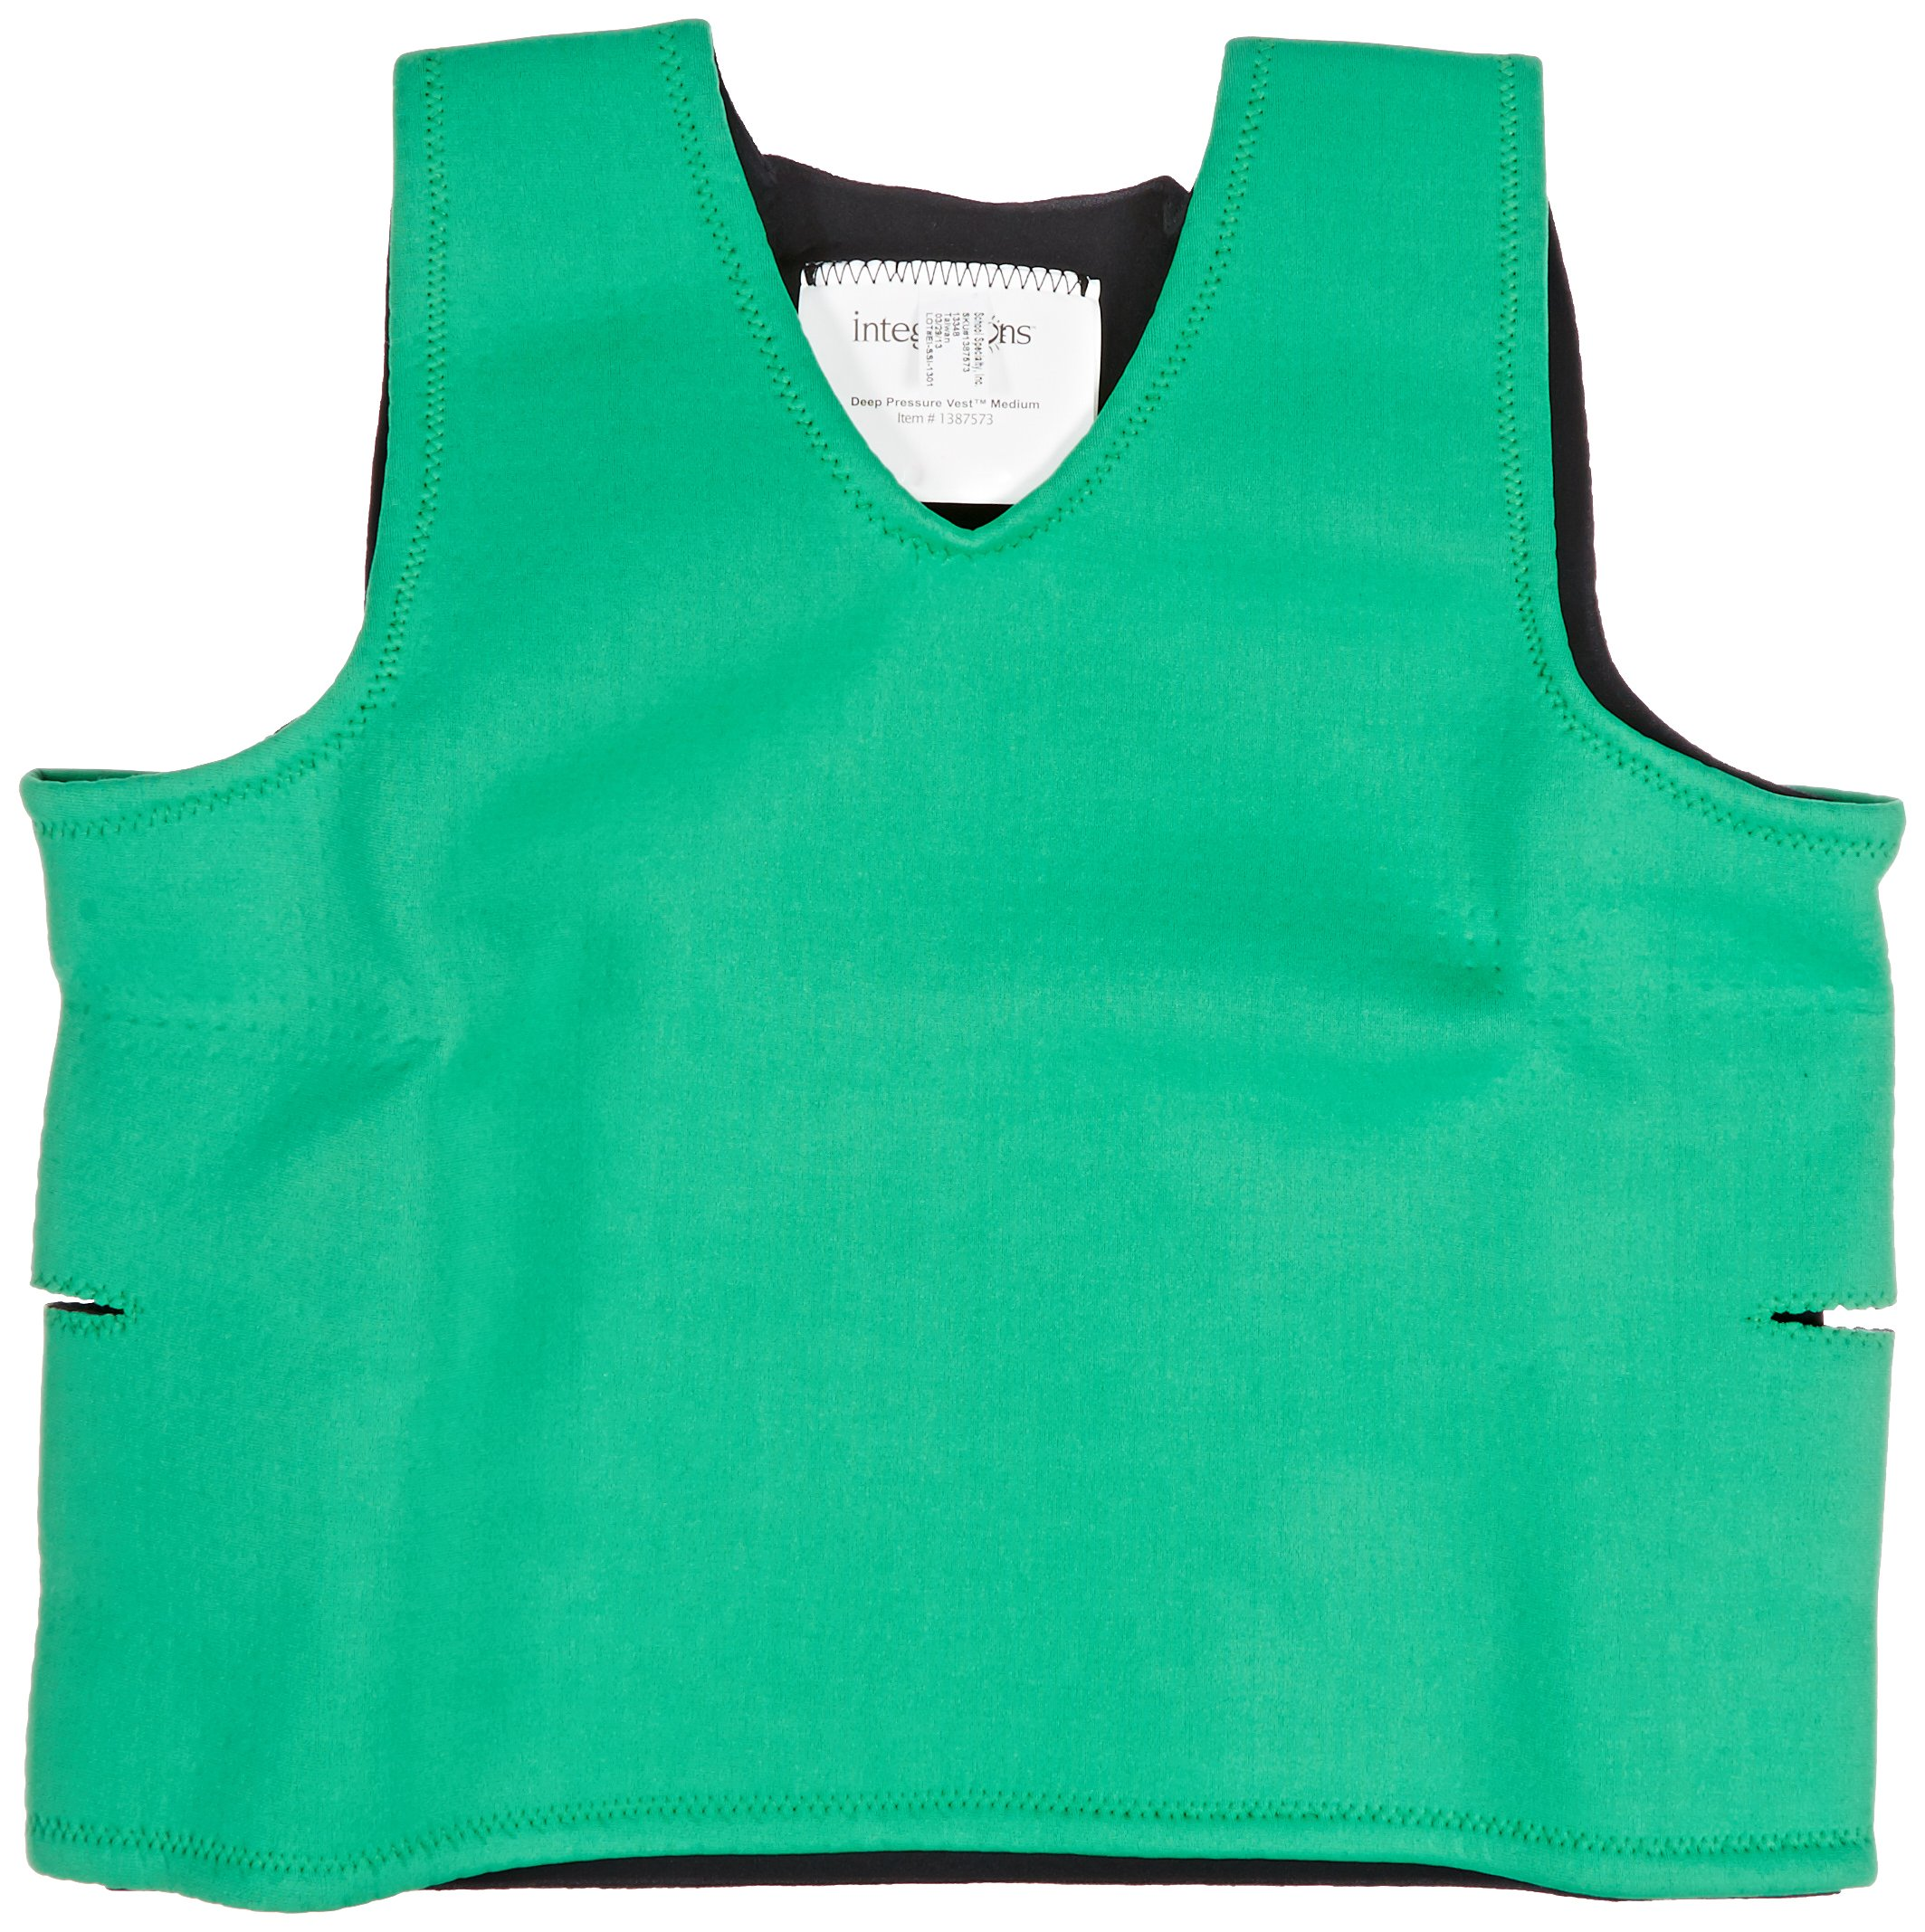 Abilitations Integrations Deep Pressure Sensory Vest, Medium, Green